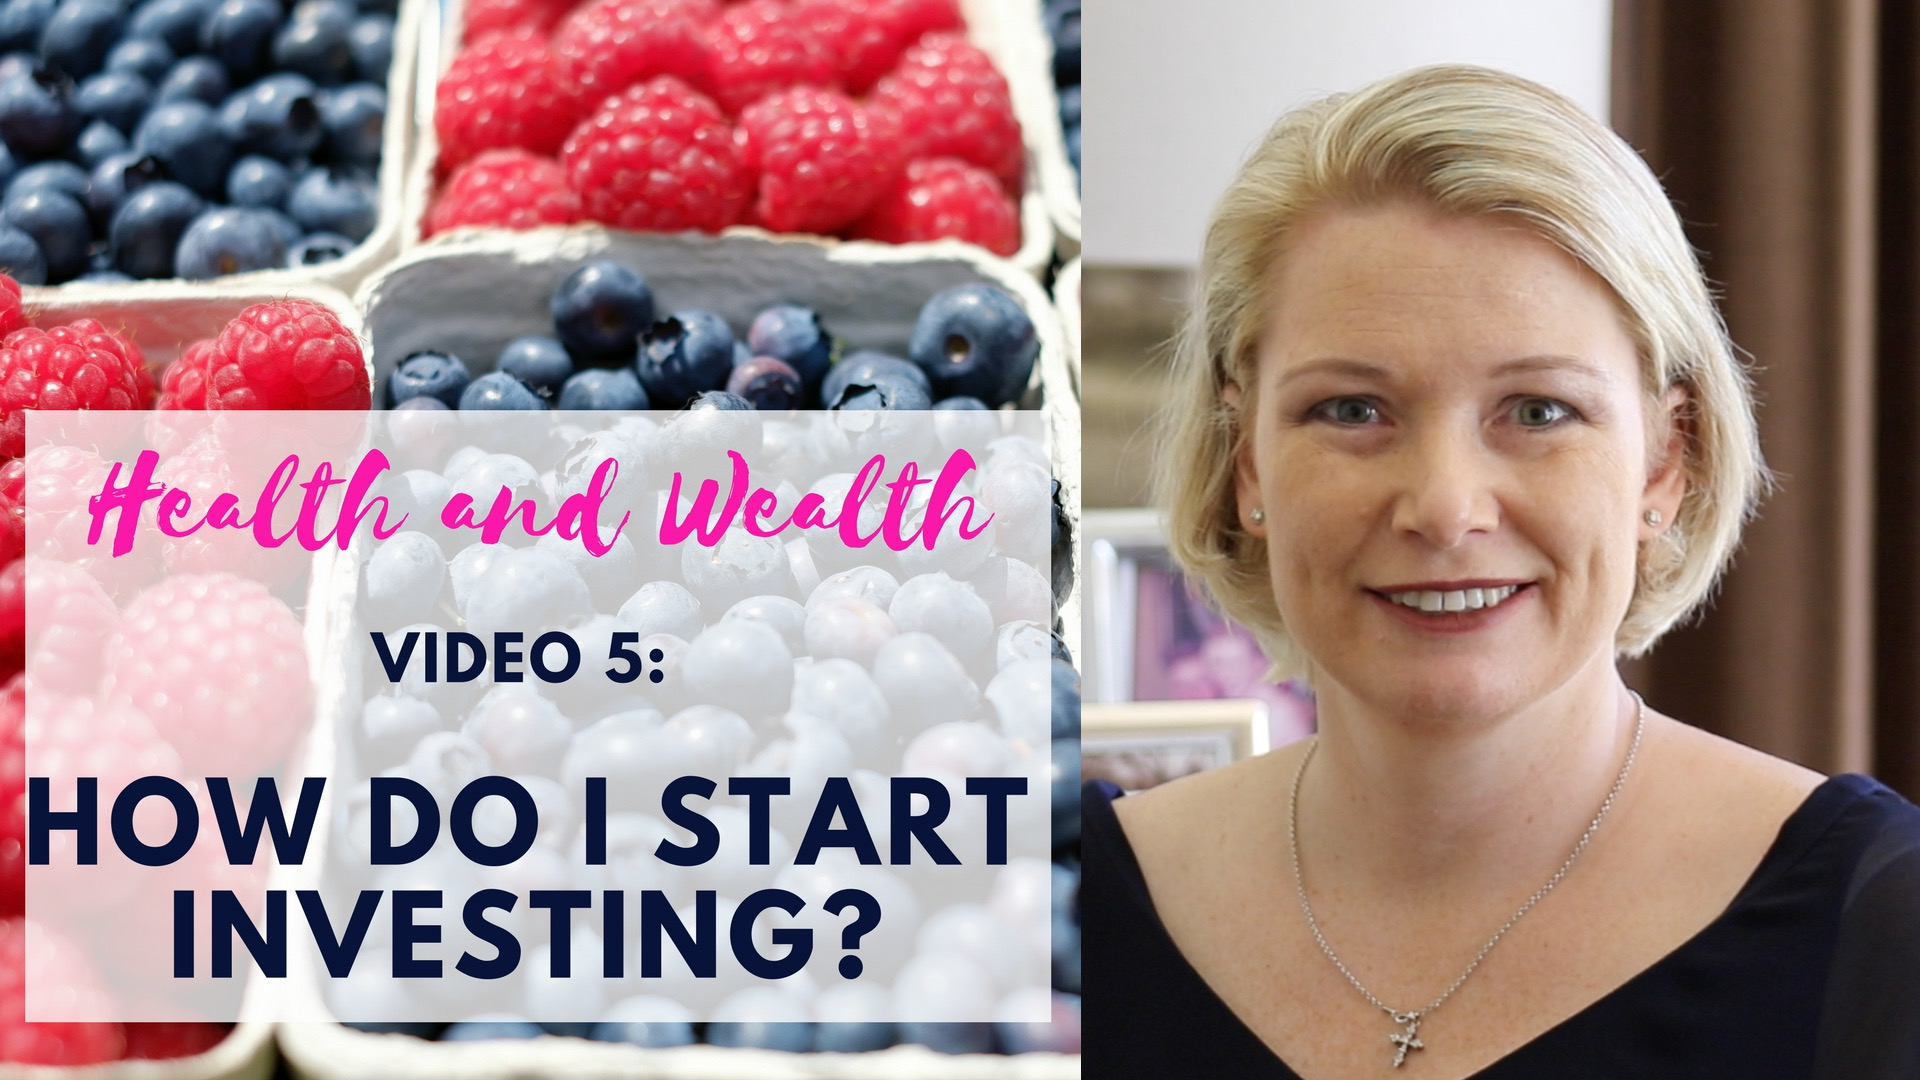 Video 6 – how to start saving to invest